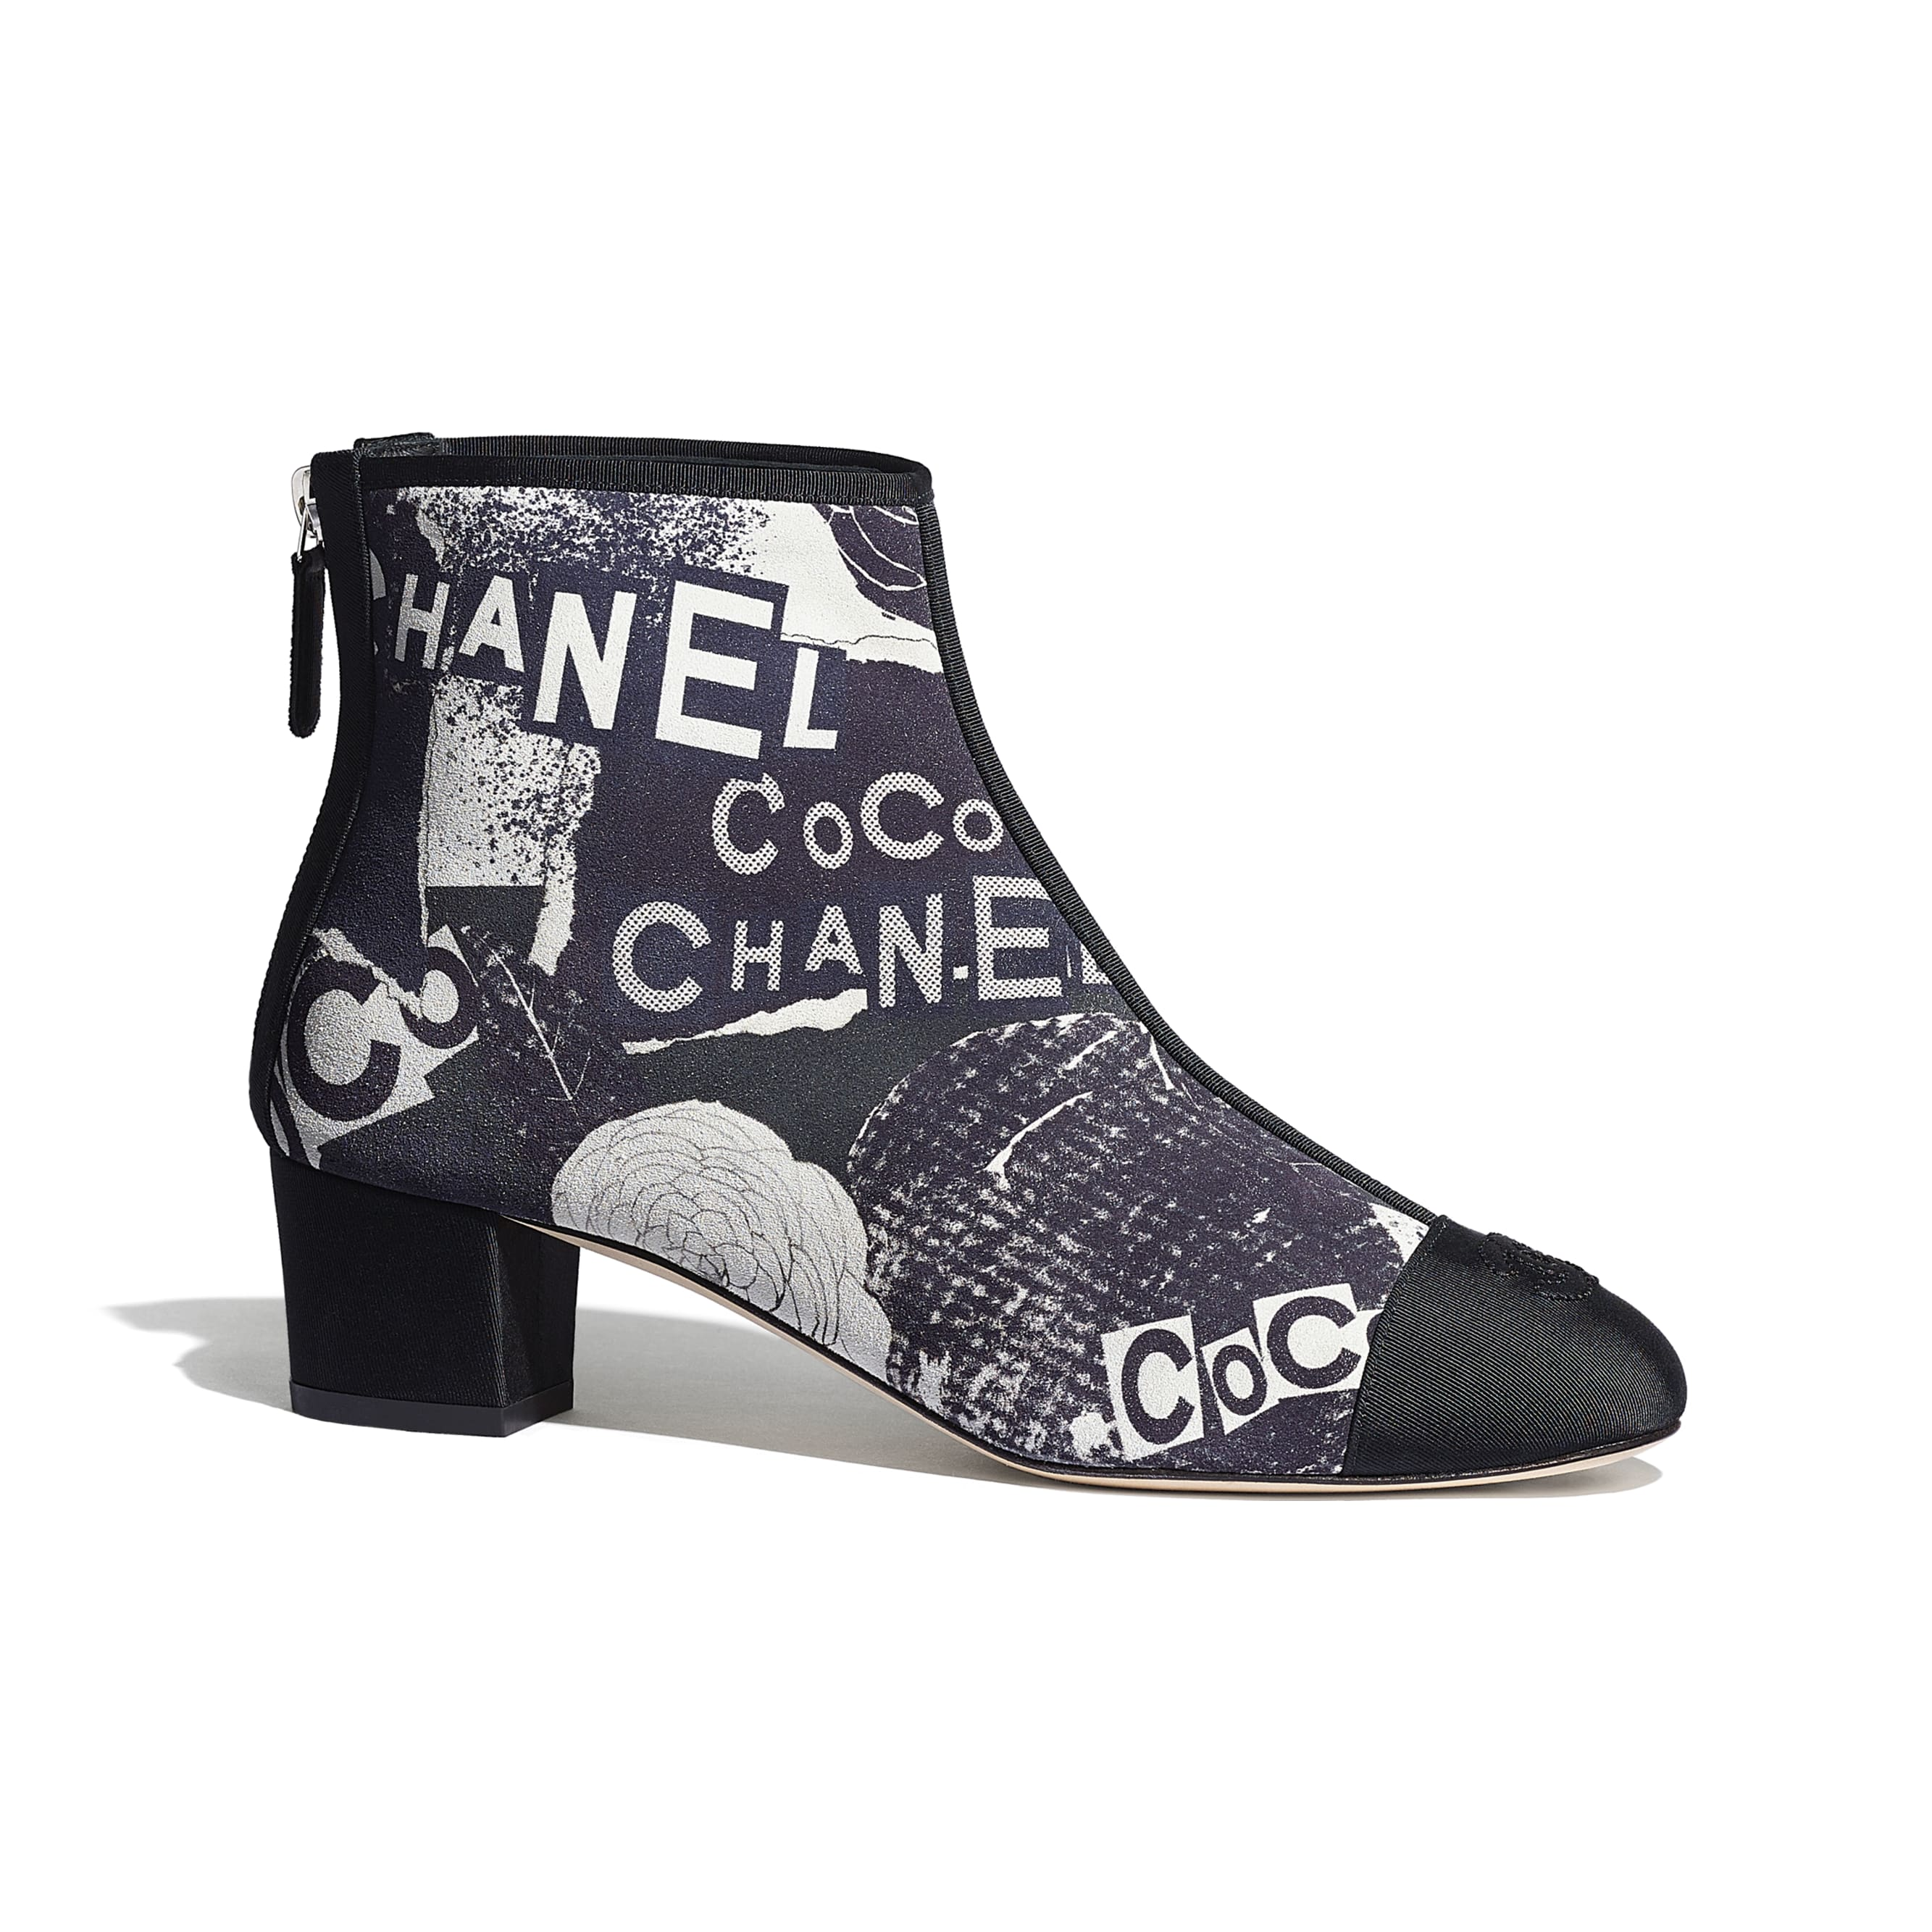 Ankle Boots - Navy Blue, White & Silver - Printed Calfskin & Grosgrain - CHANEL - Default view - see standard sized version